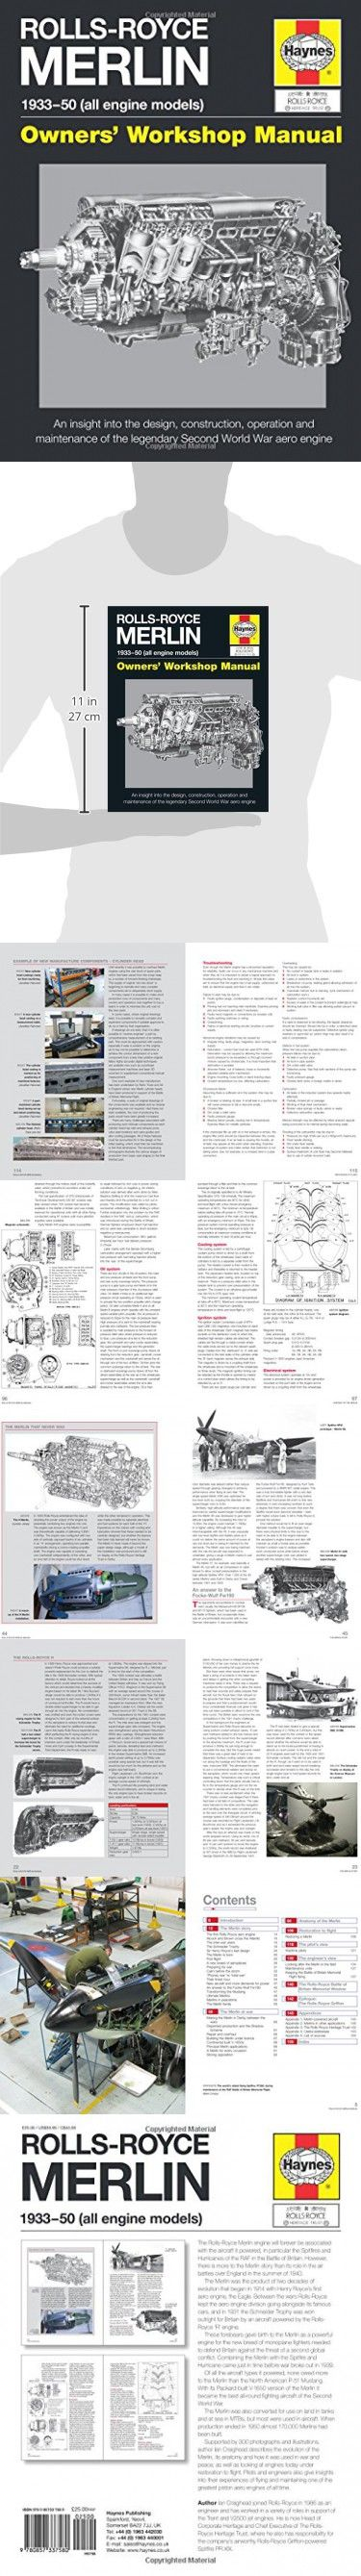 Rolls-Royce Merlin Manual - 1933-50 (all engine models): An insight into the design, construction, operation and maintenance of the legendary World War 2 aero engine (Owners' Workshop Manual)